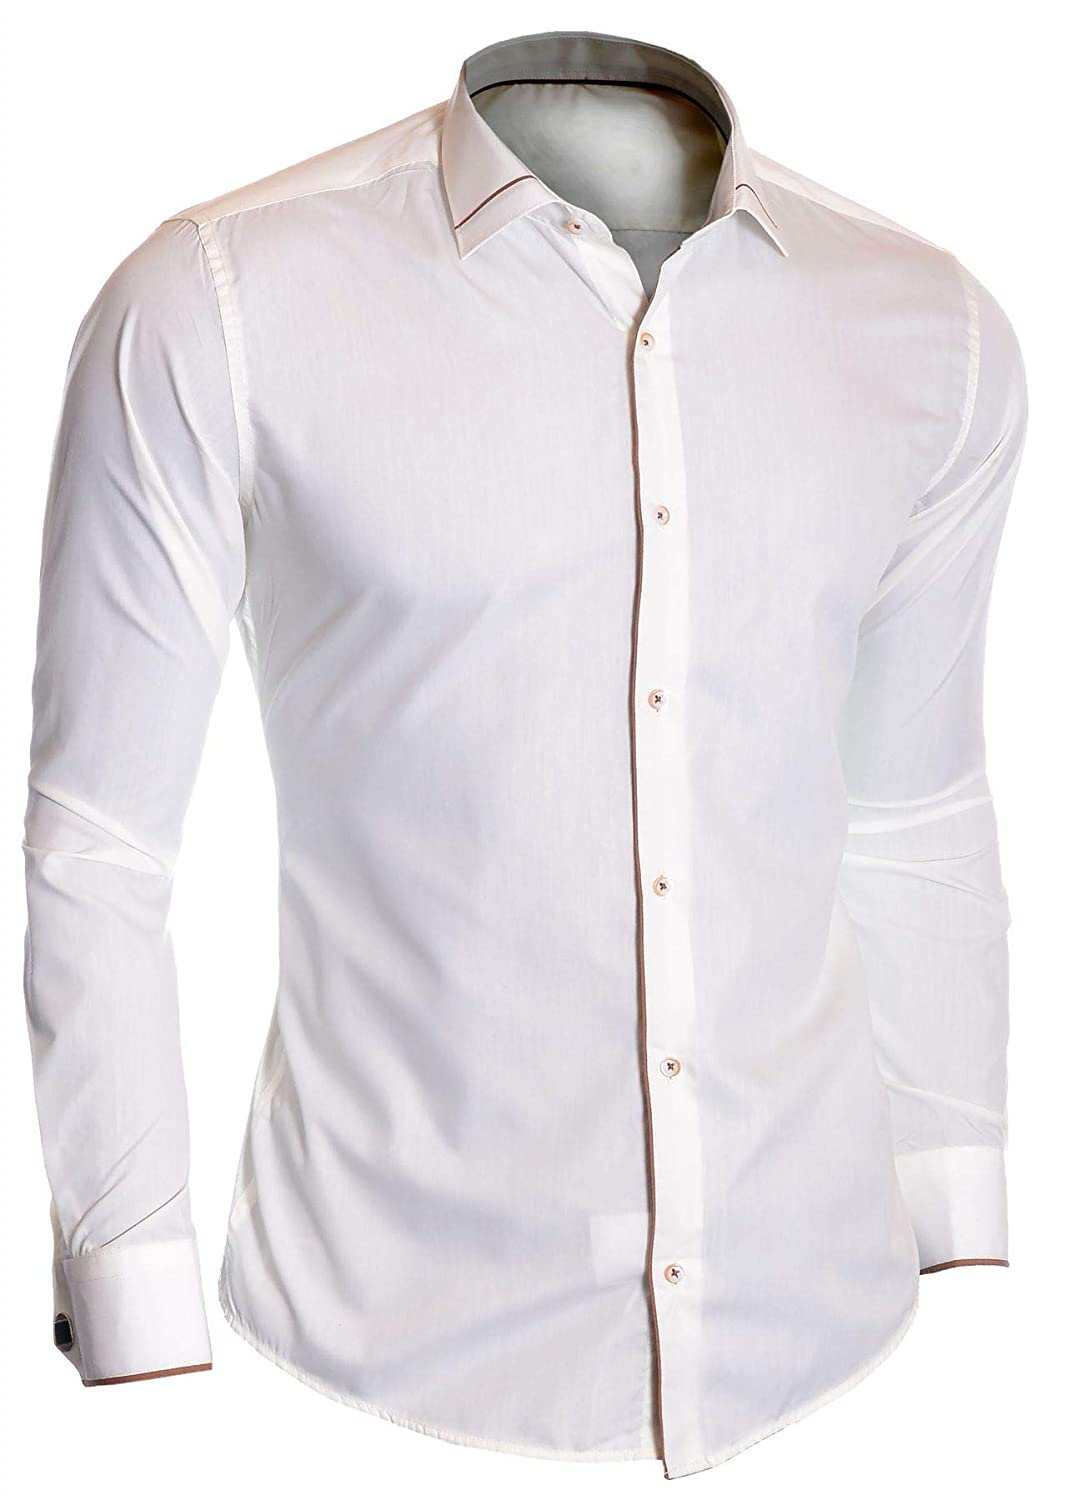 Mens Ivory Dress Shirt Double Cuffs Free Square Cufflinks Cotton